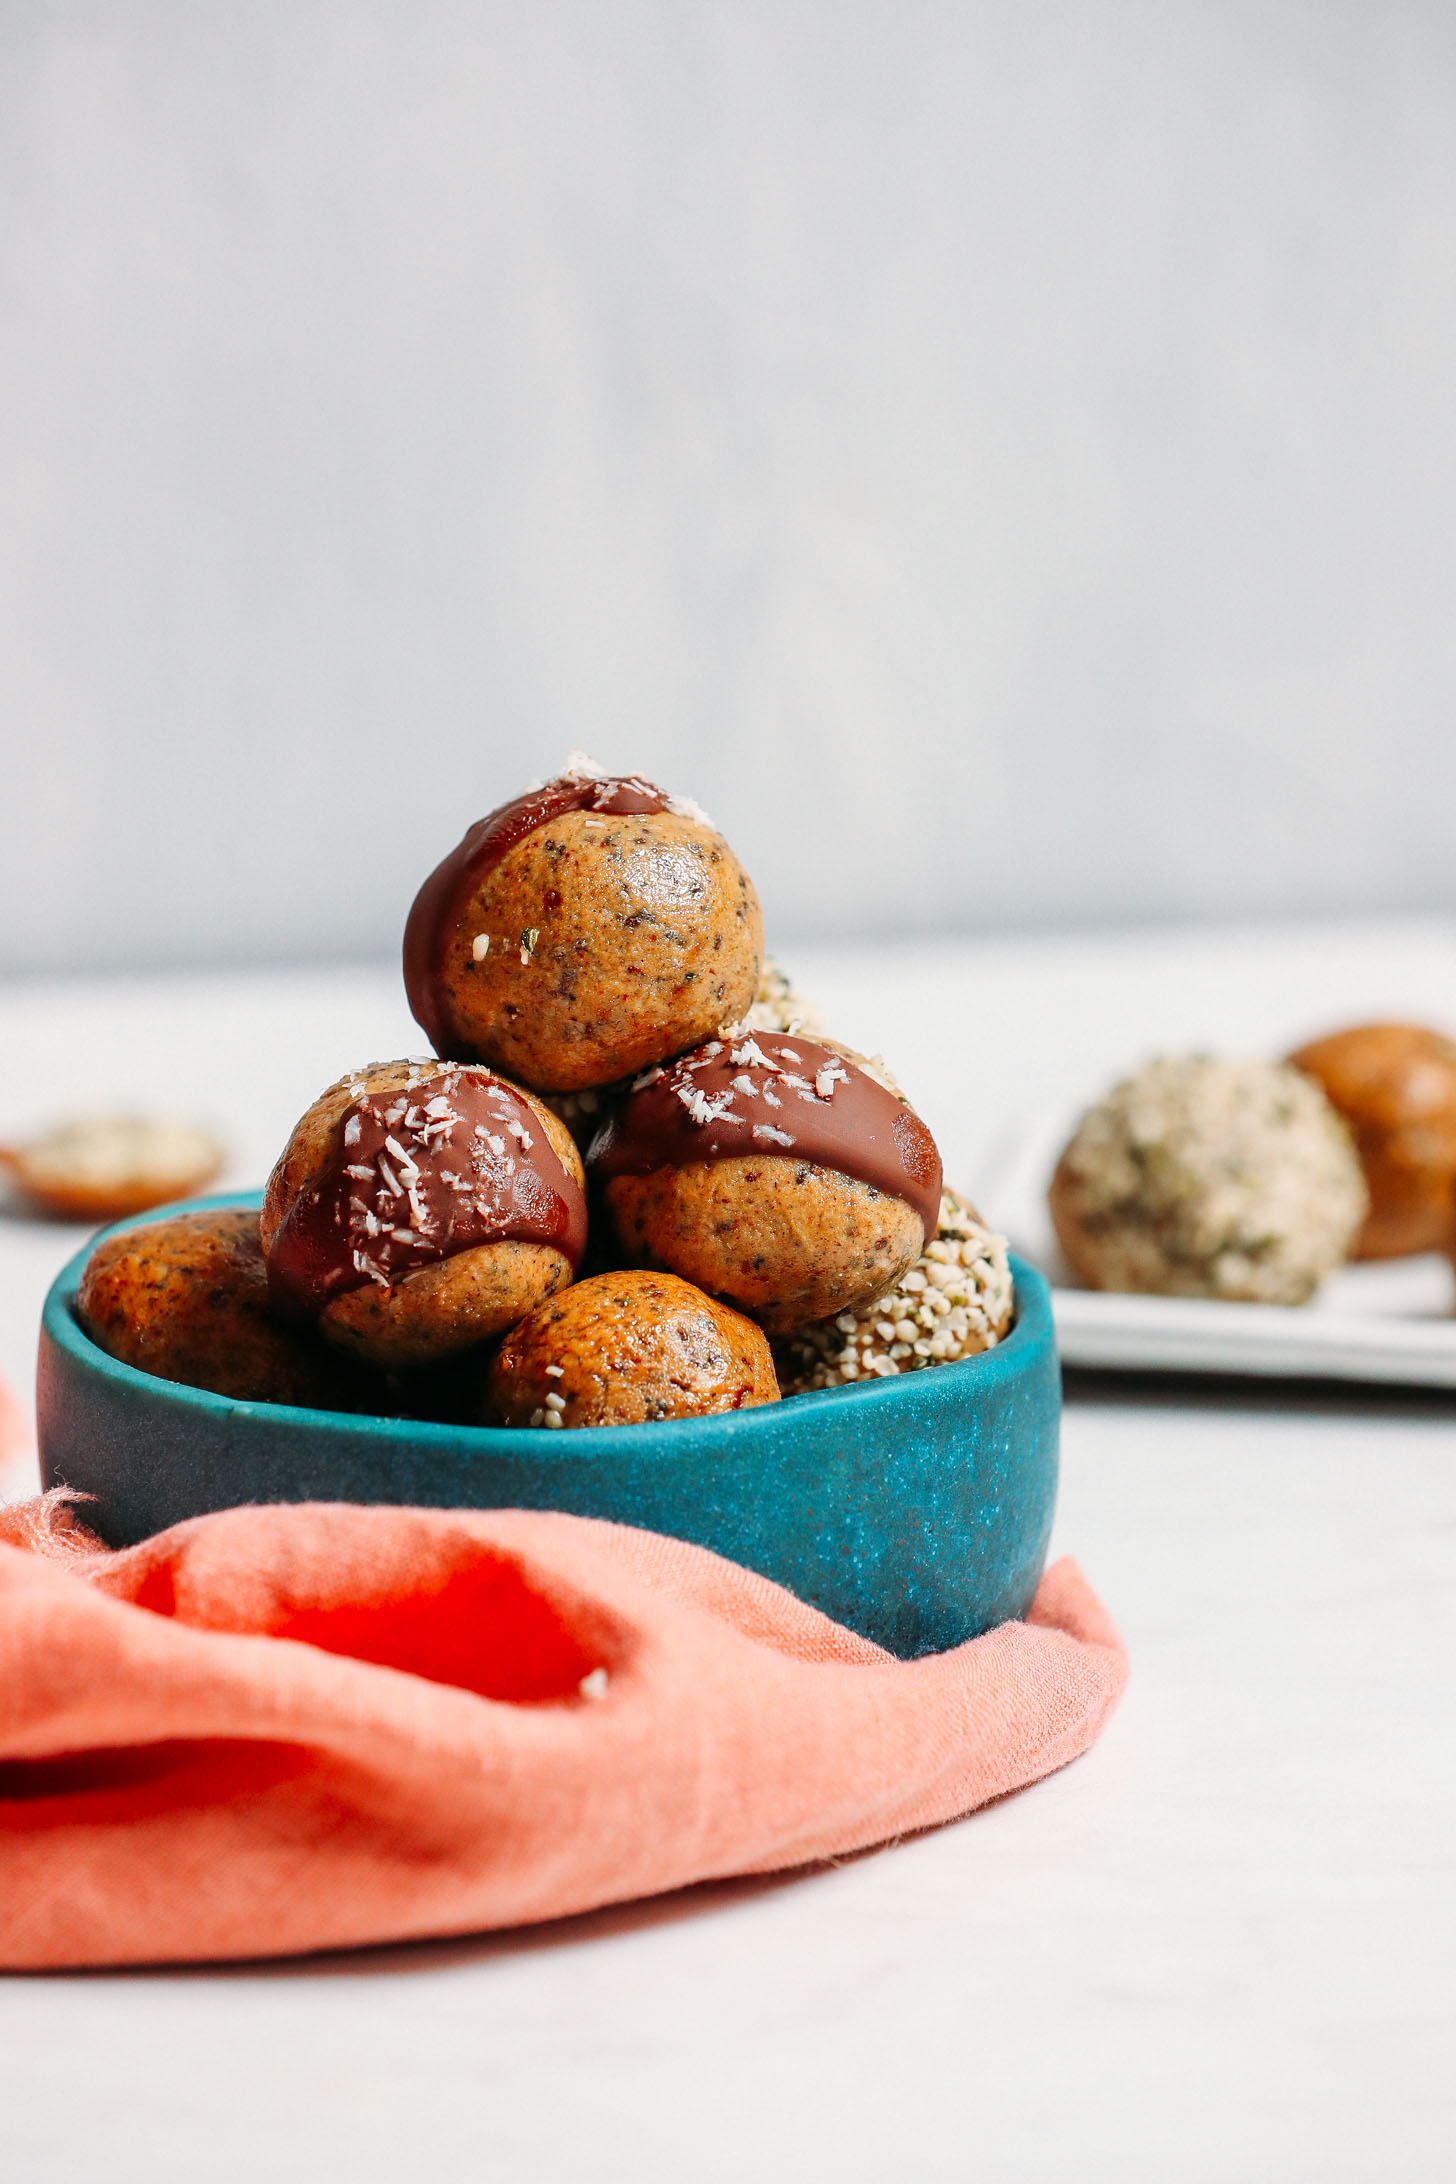 Bowl piled high with our grain-free, low sugar Protein Balls made with 5 simple ingredients